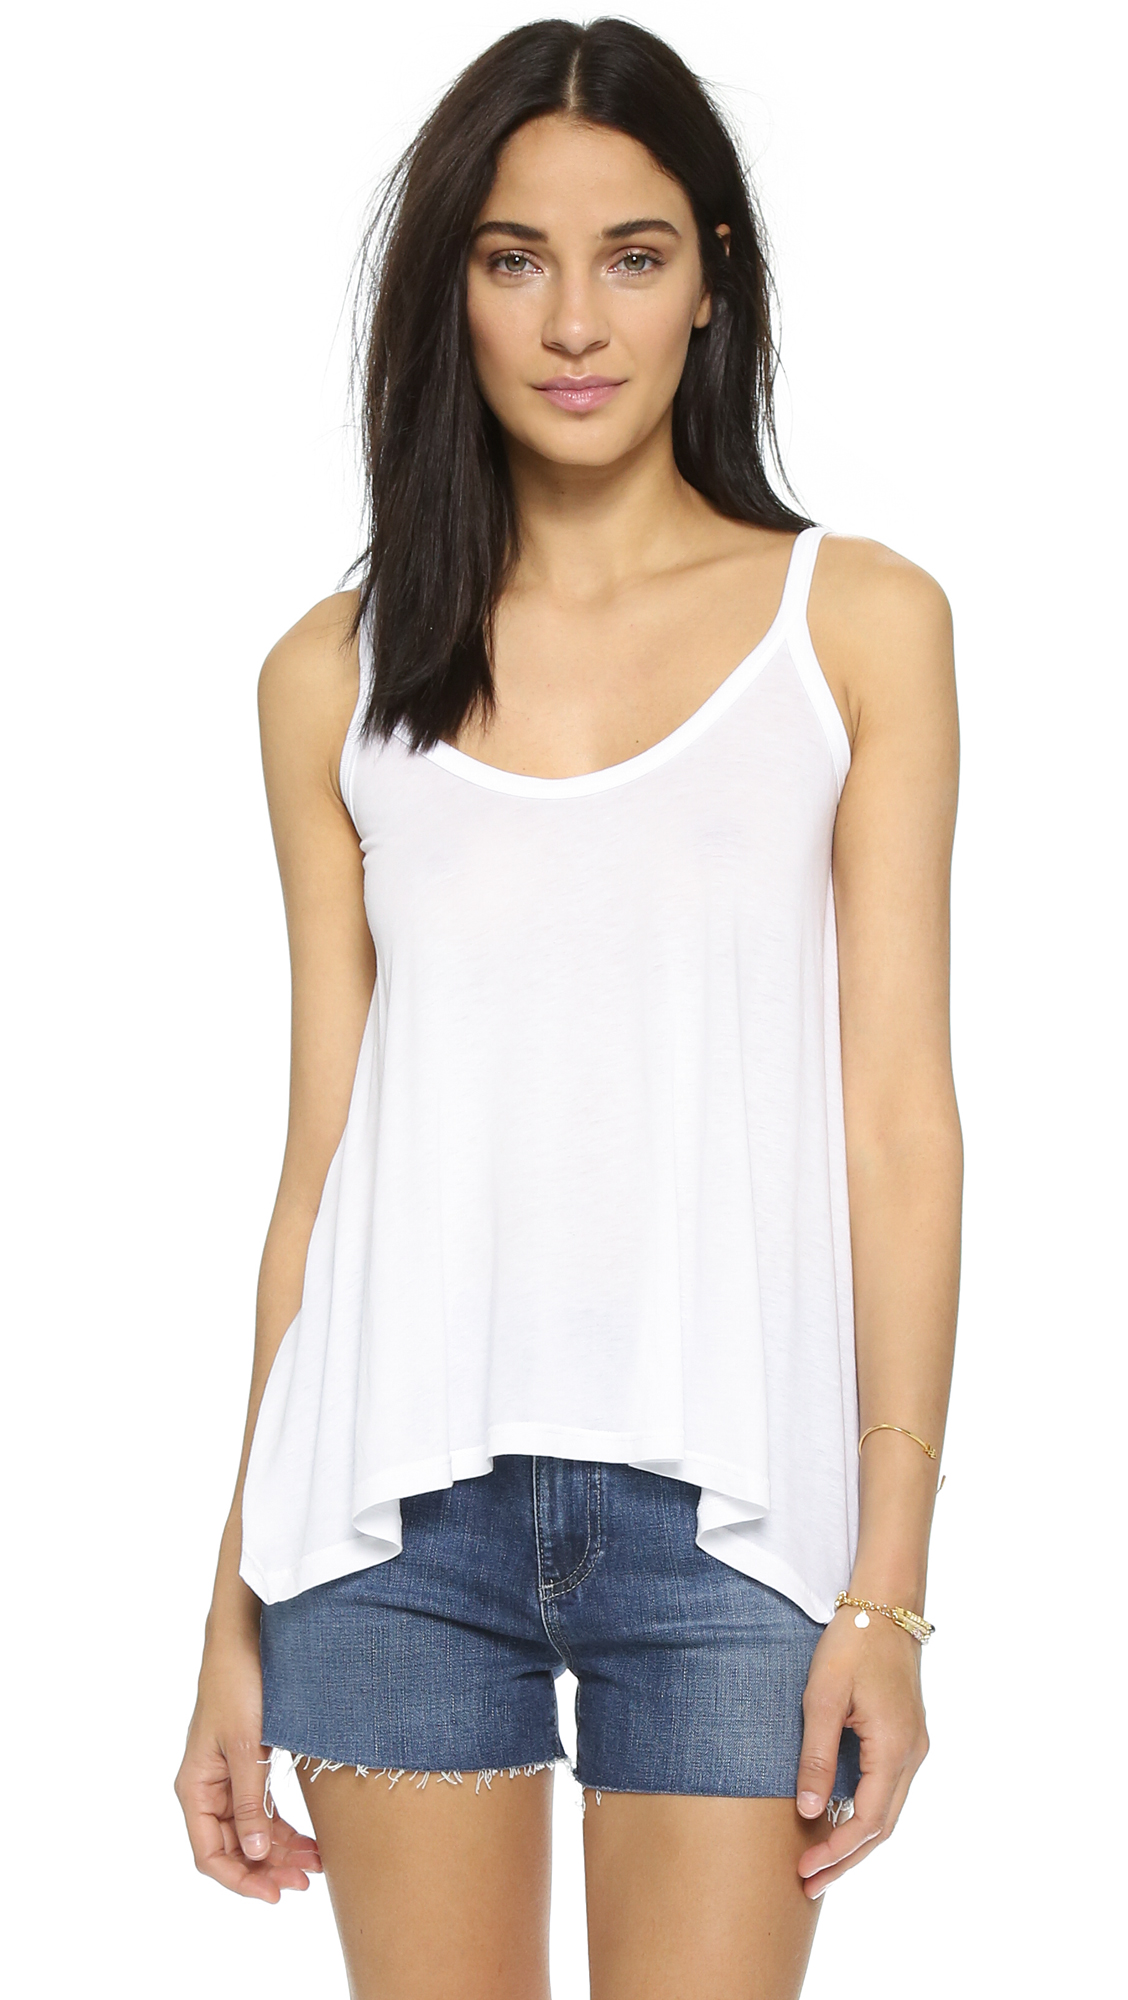 Splendid Light & Fashionable Tank - White